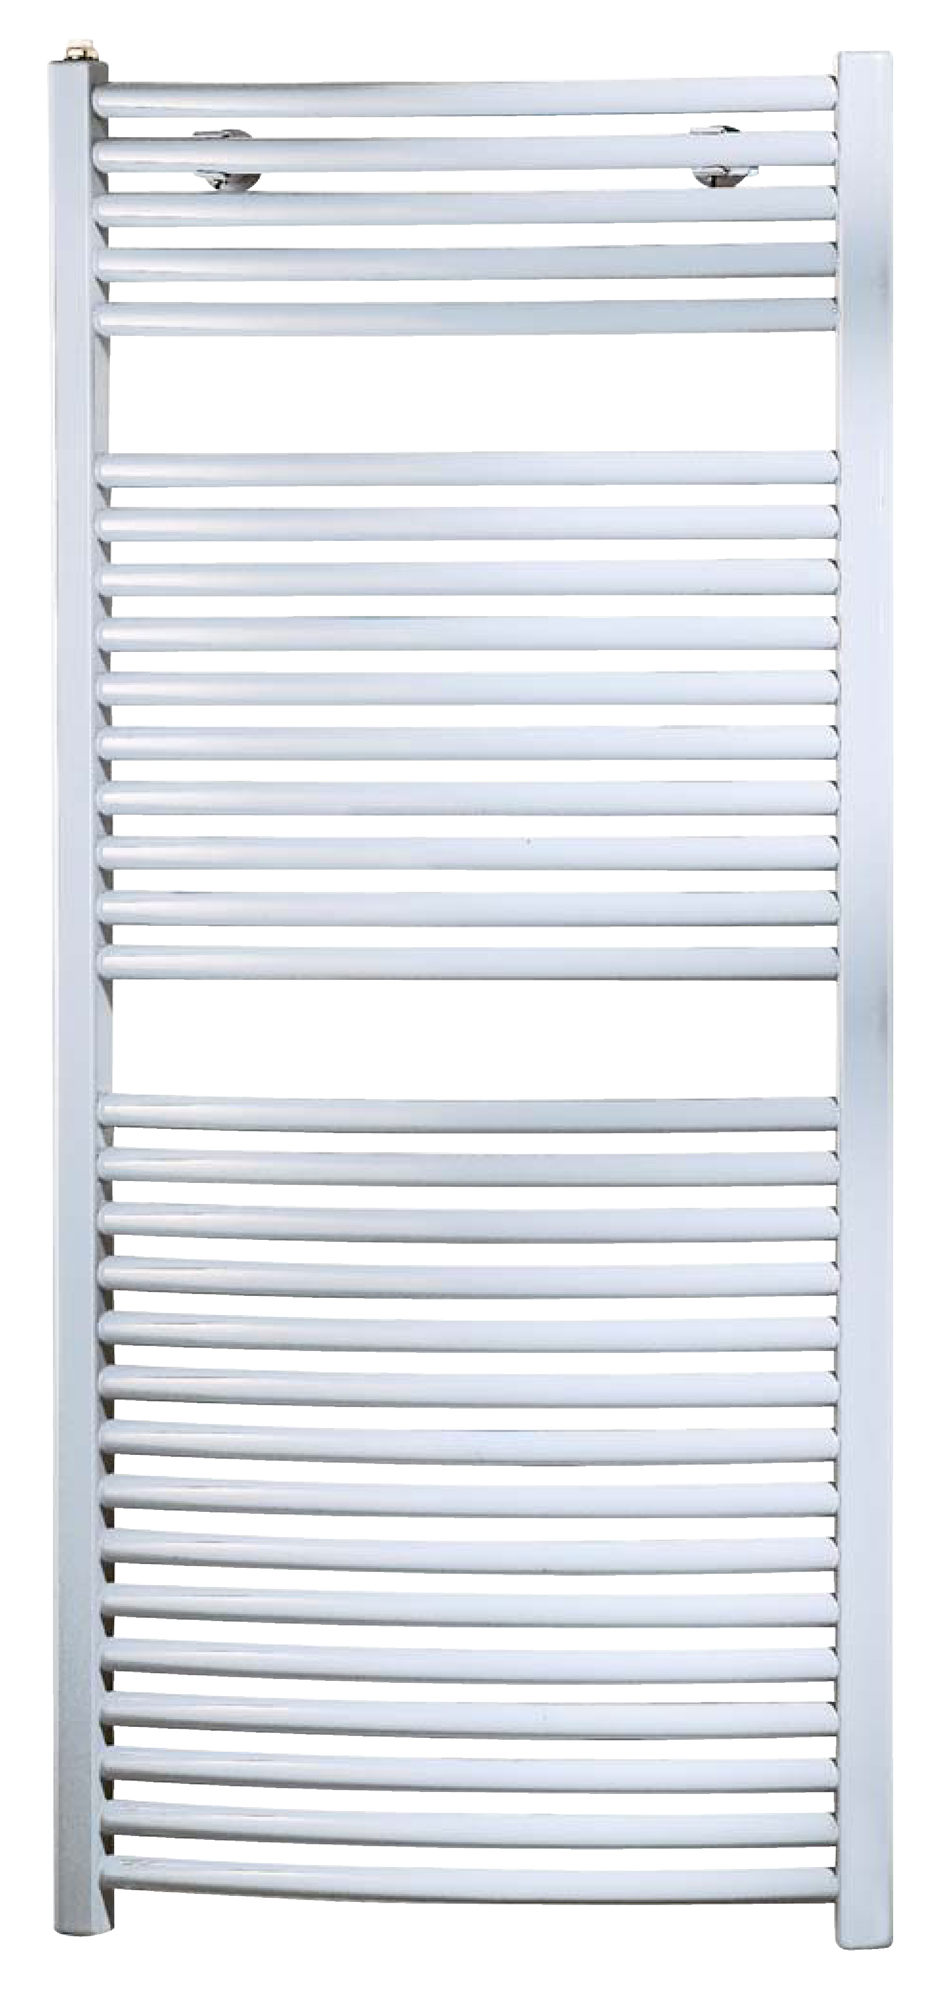 adesio dl radiators radiateur s che serviettes ola 2 chauffage central puissance 601 w h. Black Bedroom Furniture Sets. Home Design Ideas